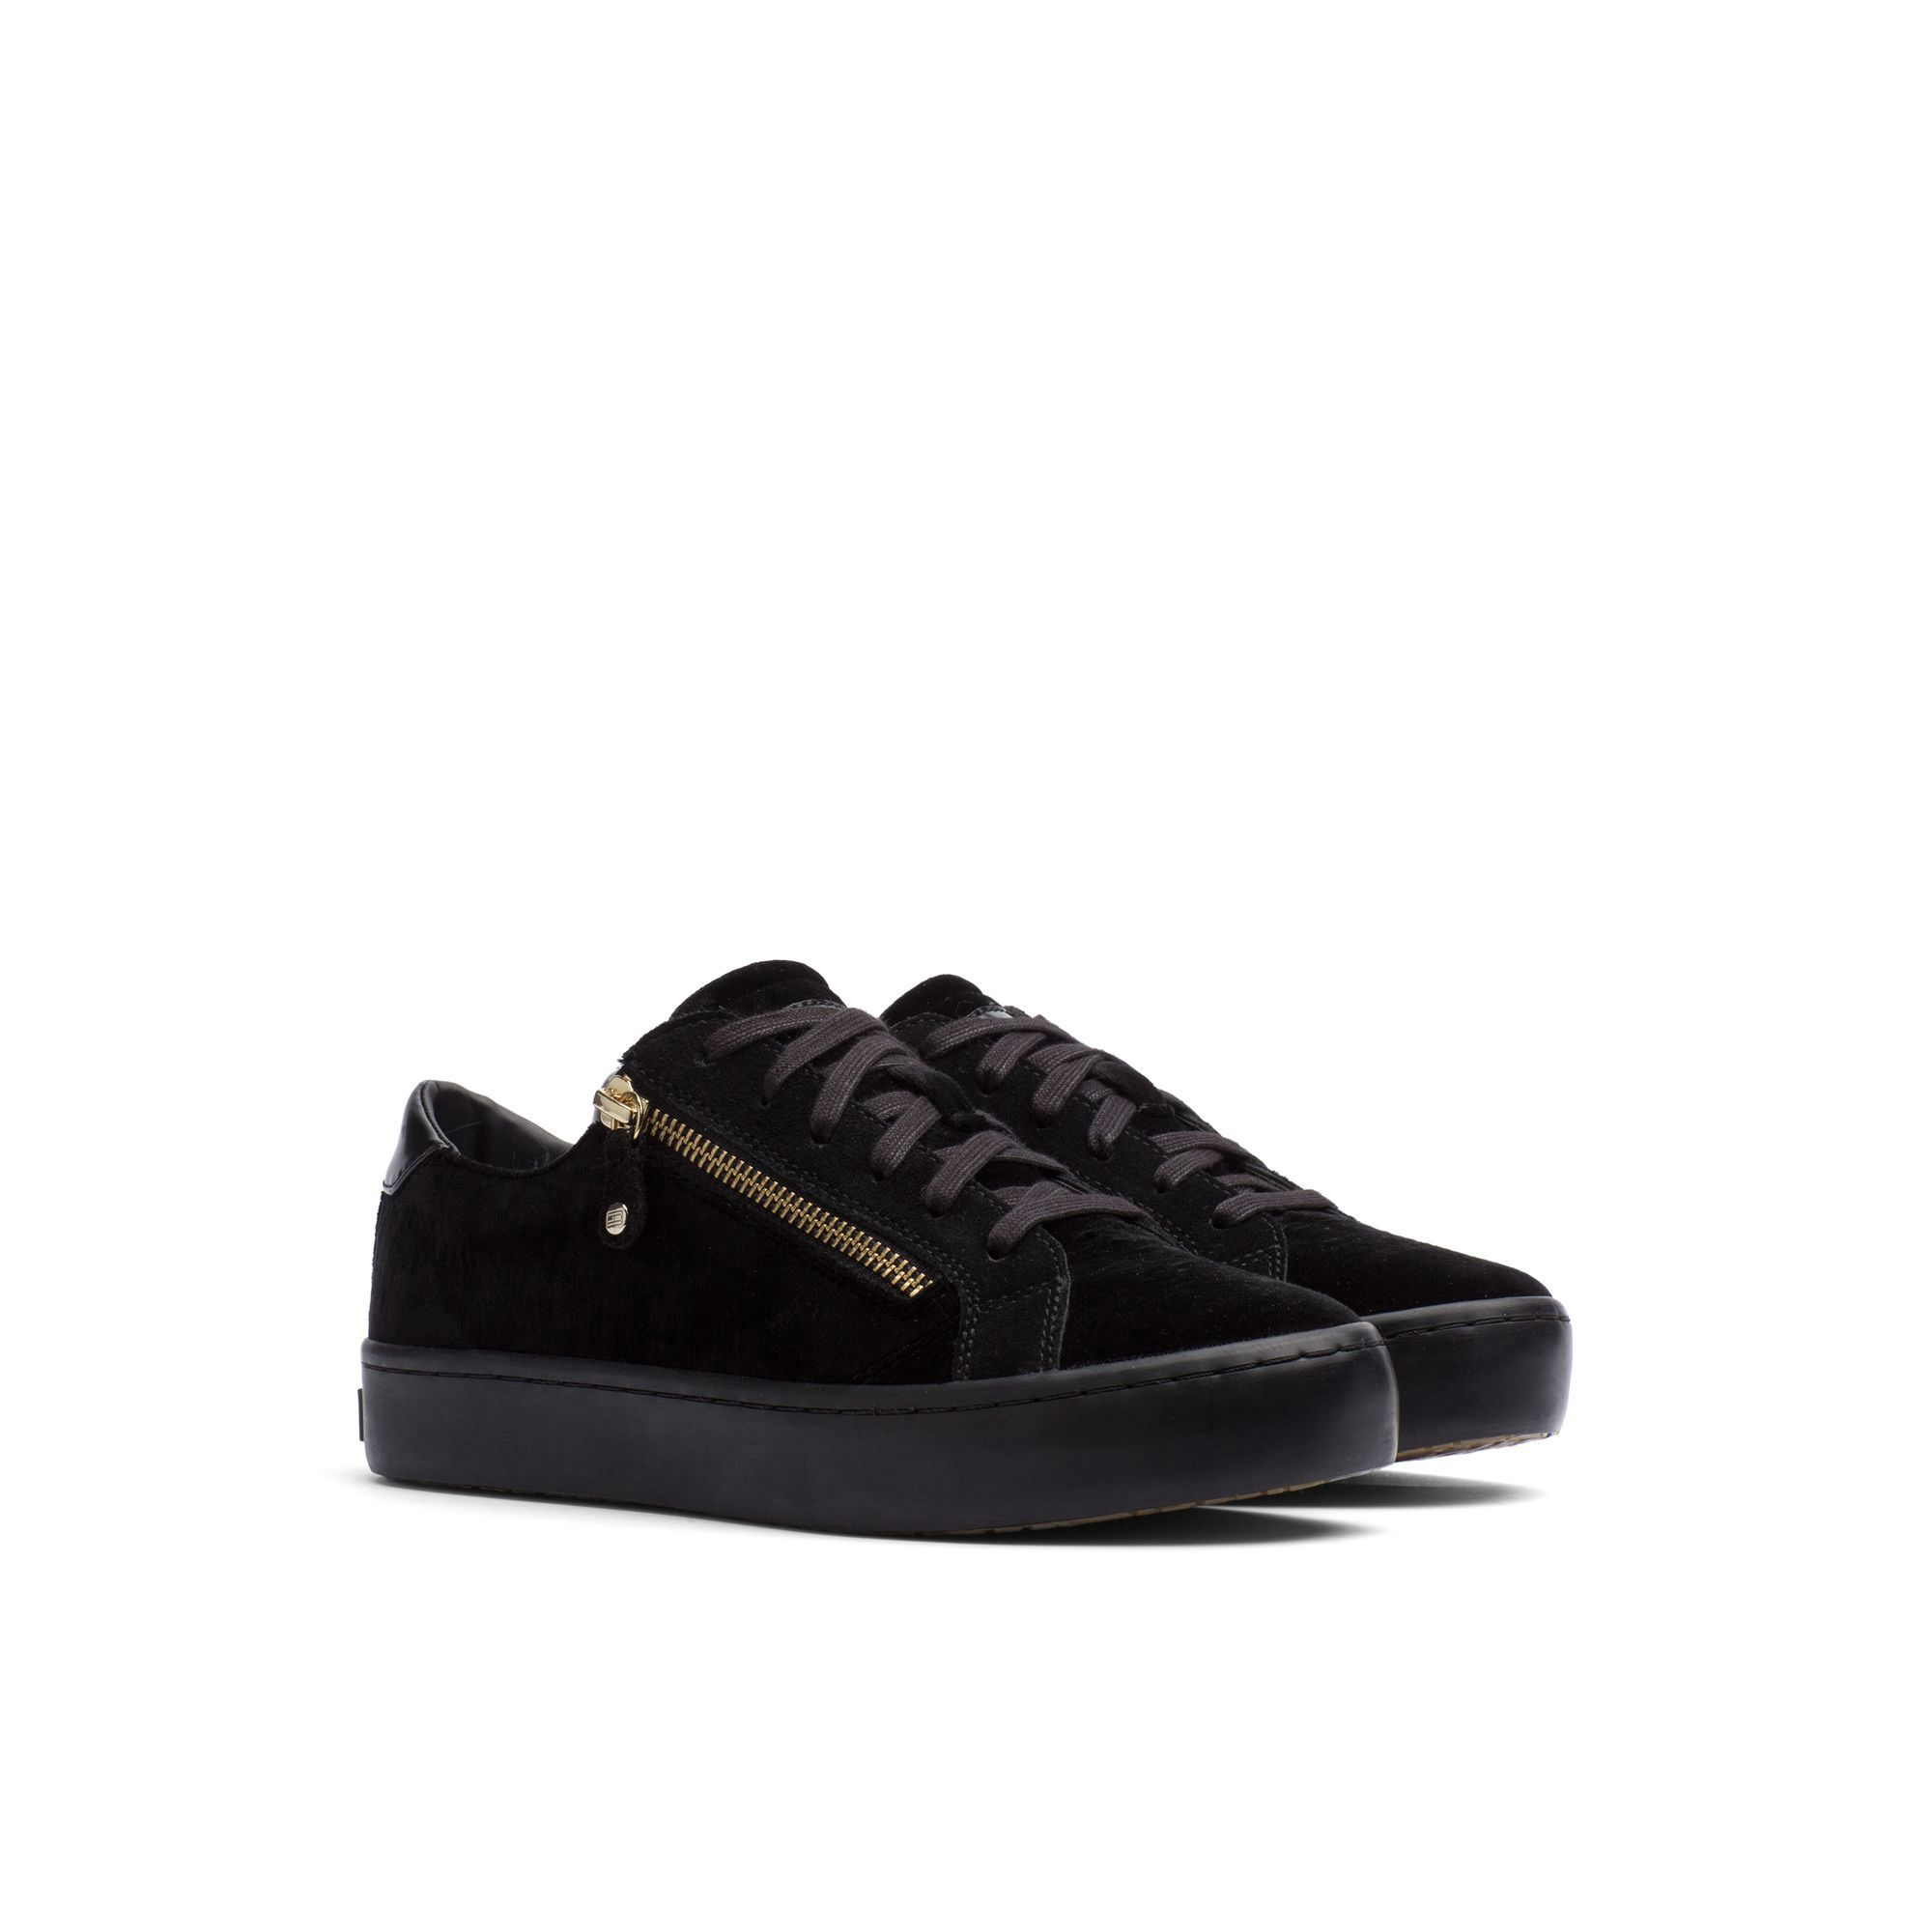 Hilfiger Collection, Fall As seen on the runway, we bring you these  exquisitely crafted velvet sneakers with a thick rubber sole. For a glam  touch, ...